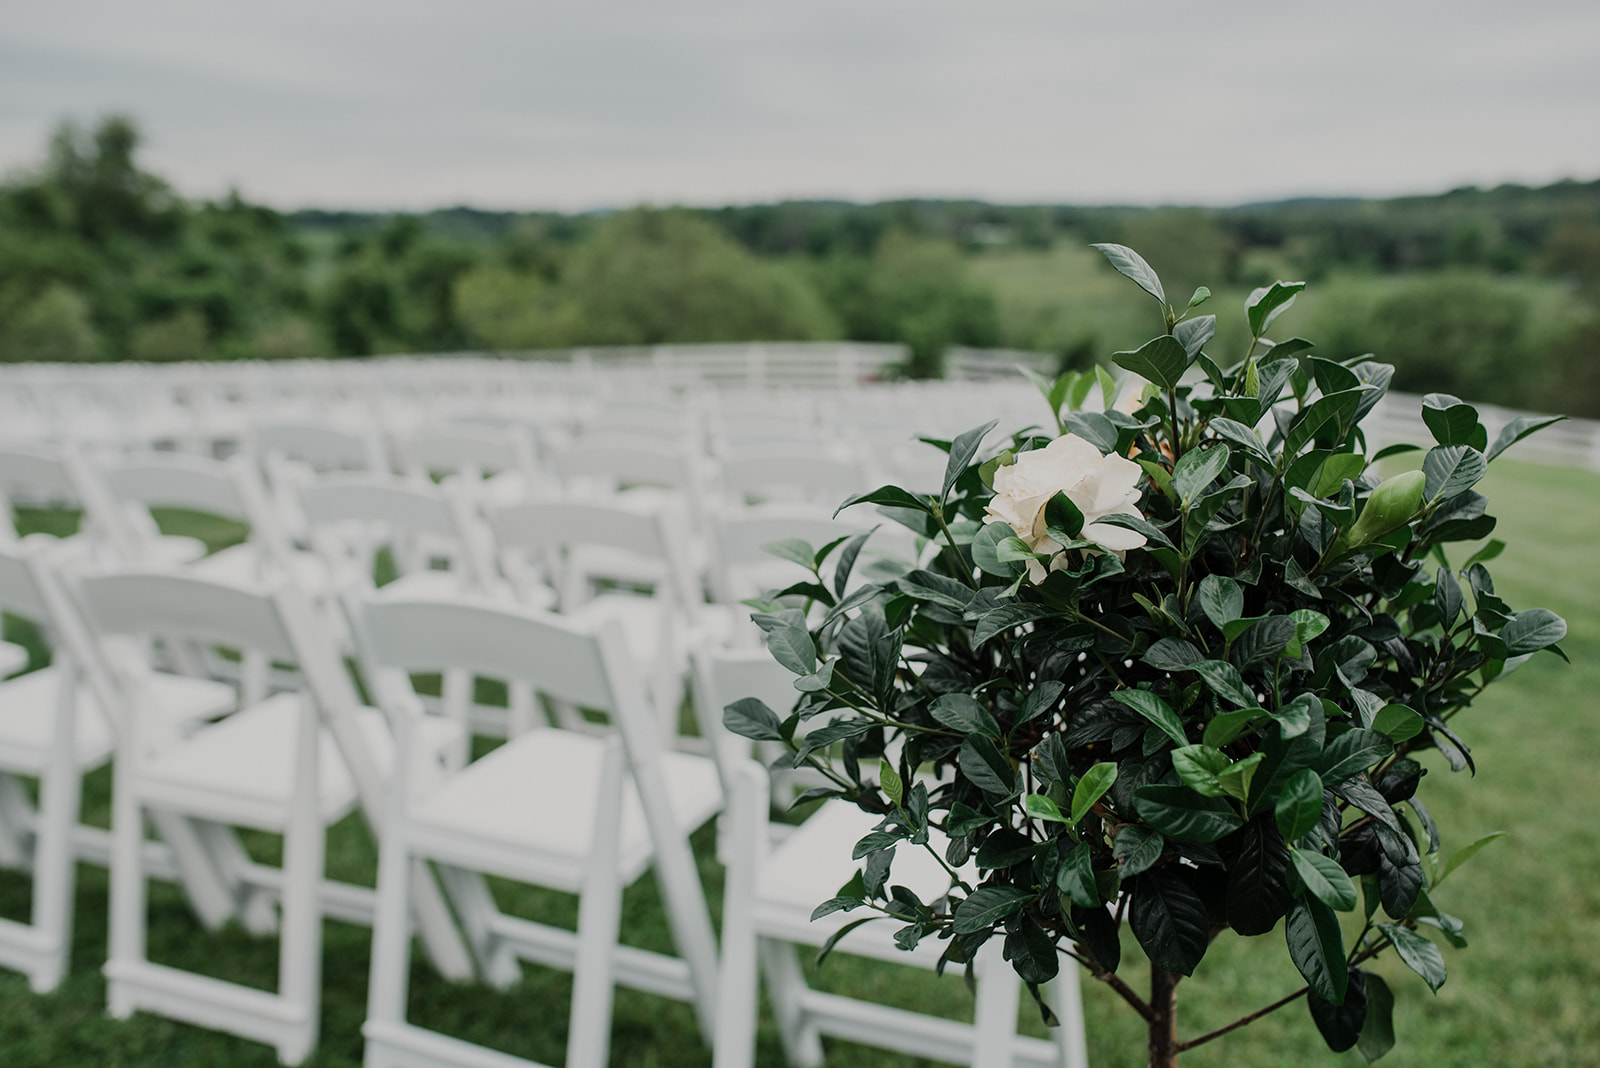 A short tree sits next to the chairs set up for an outdoor spring ceremony at Blue Hill Farm in Waterford, VA.